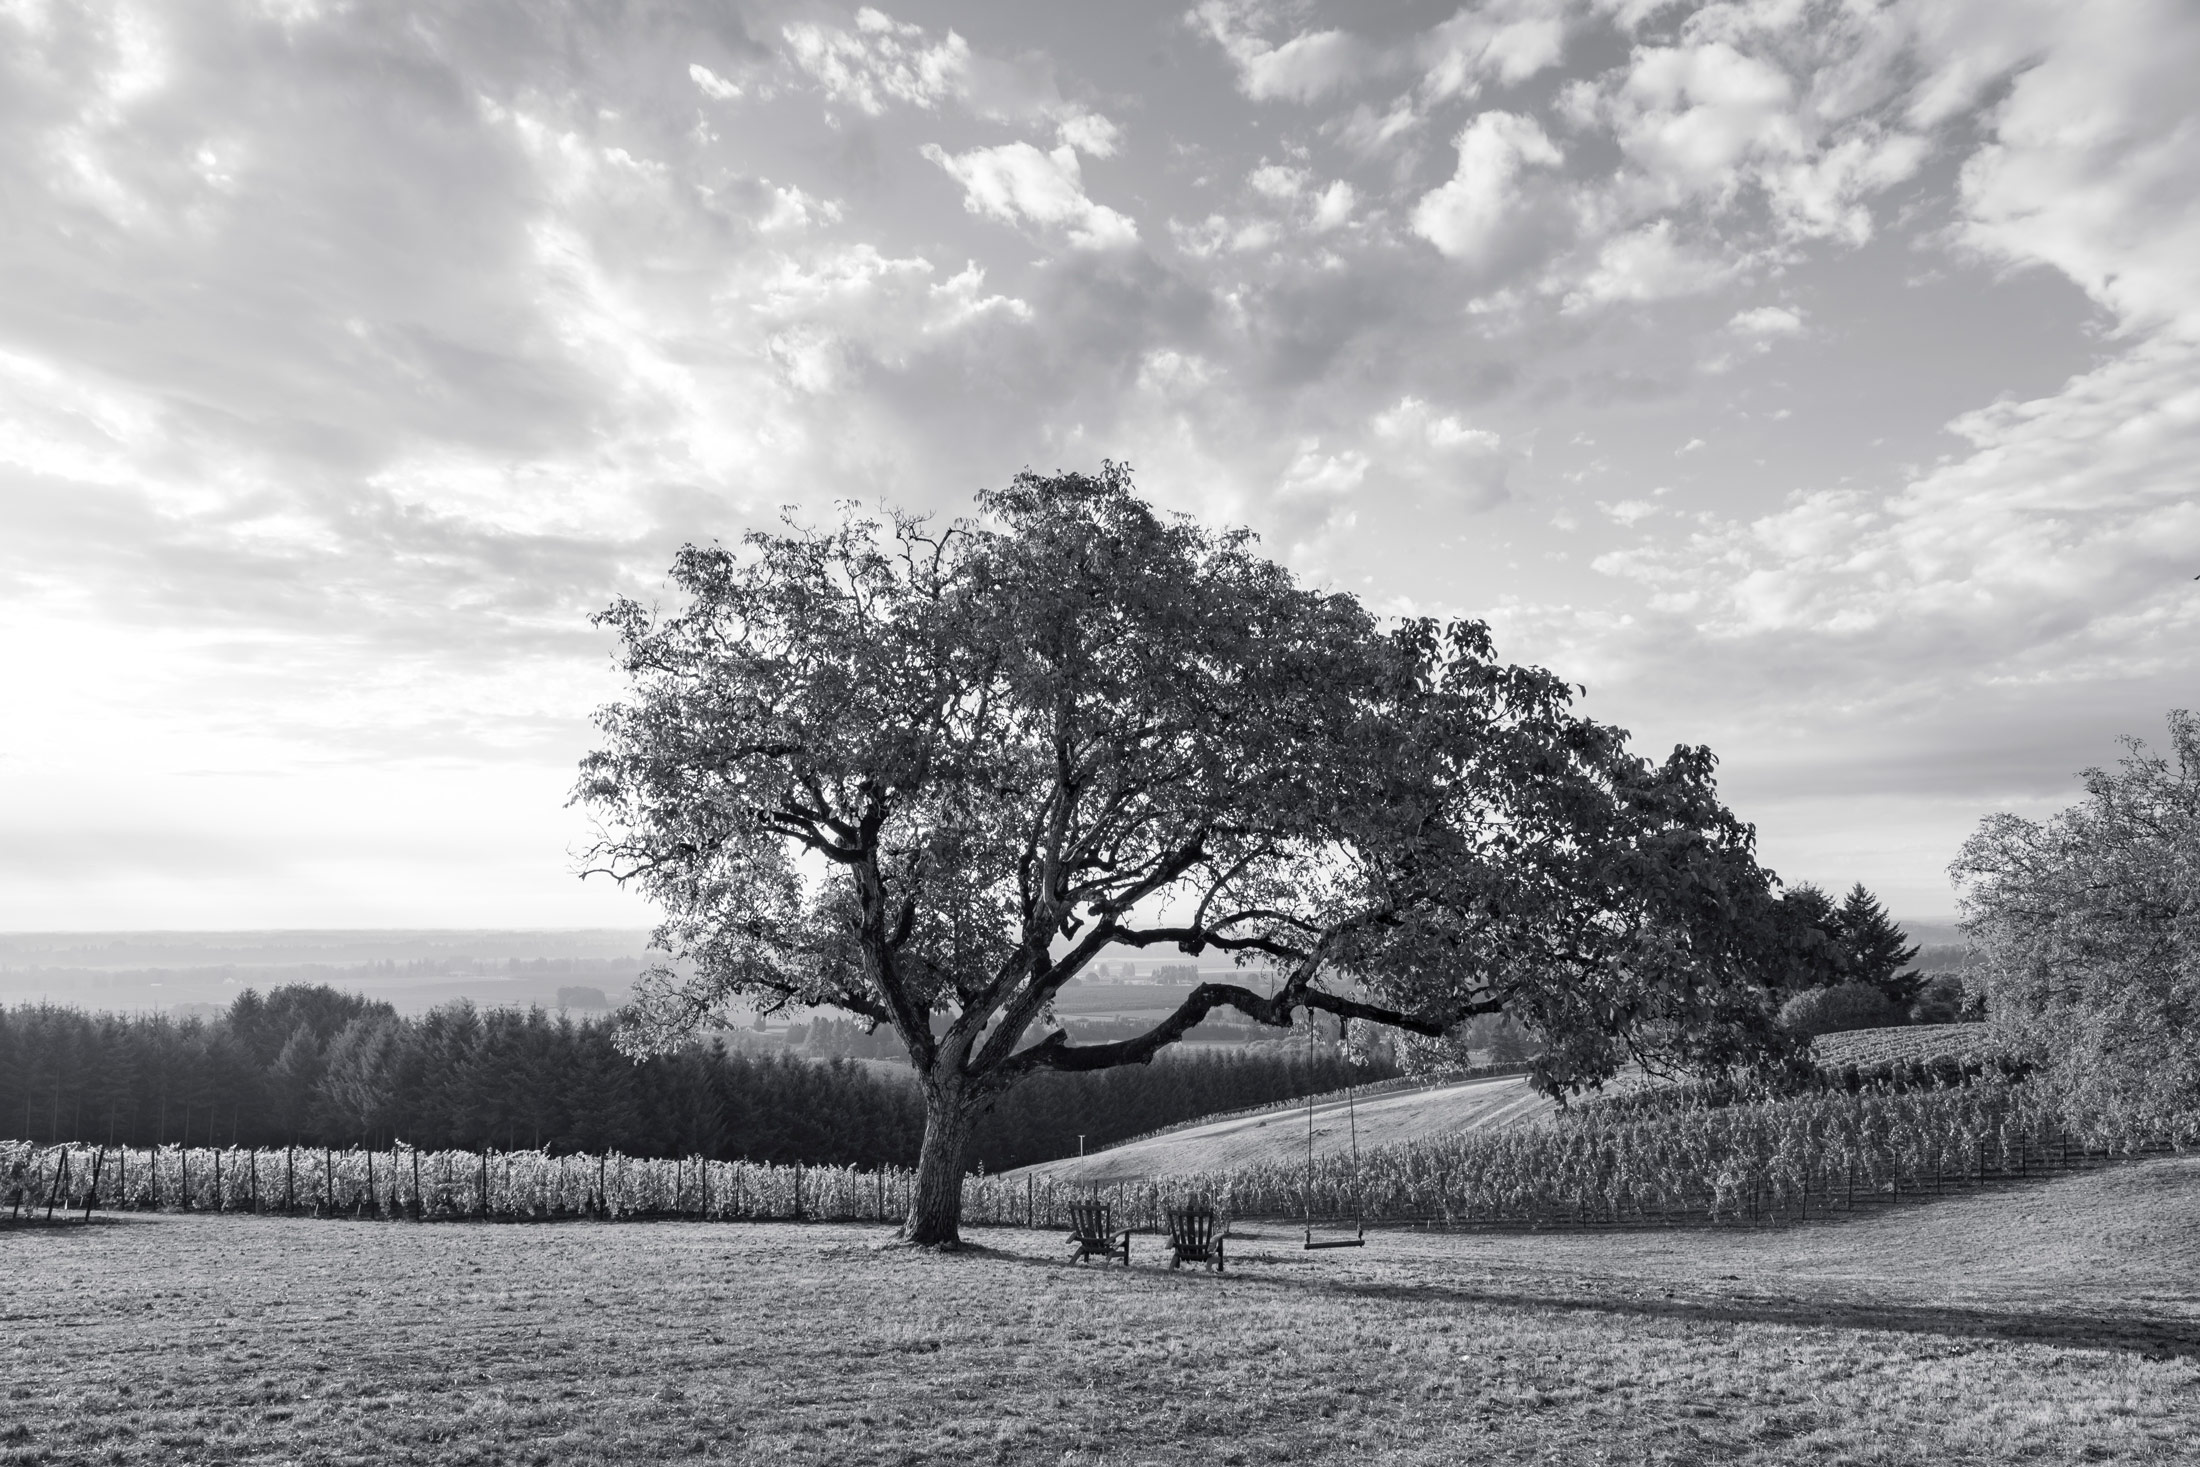 Walnut tree with chairs and swing, vineyards